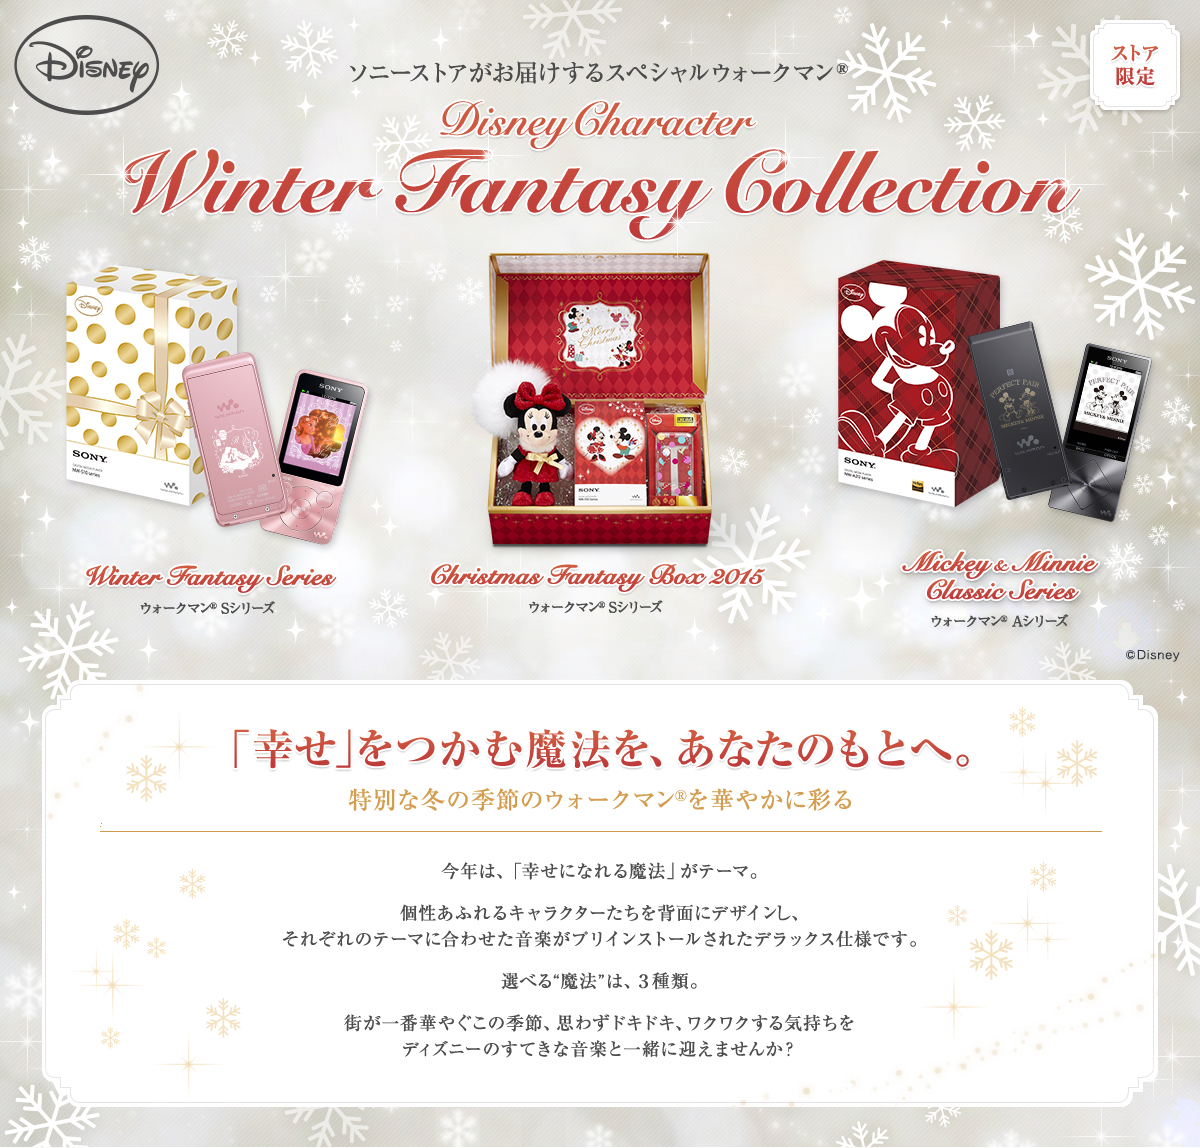 �E�H�[�N�}��® Disney Character Winter Fantasy Collection